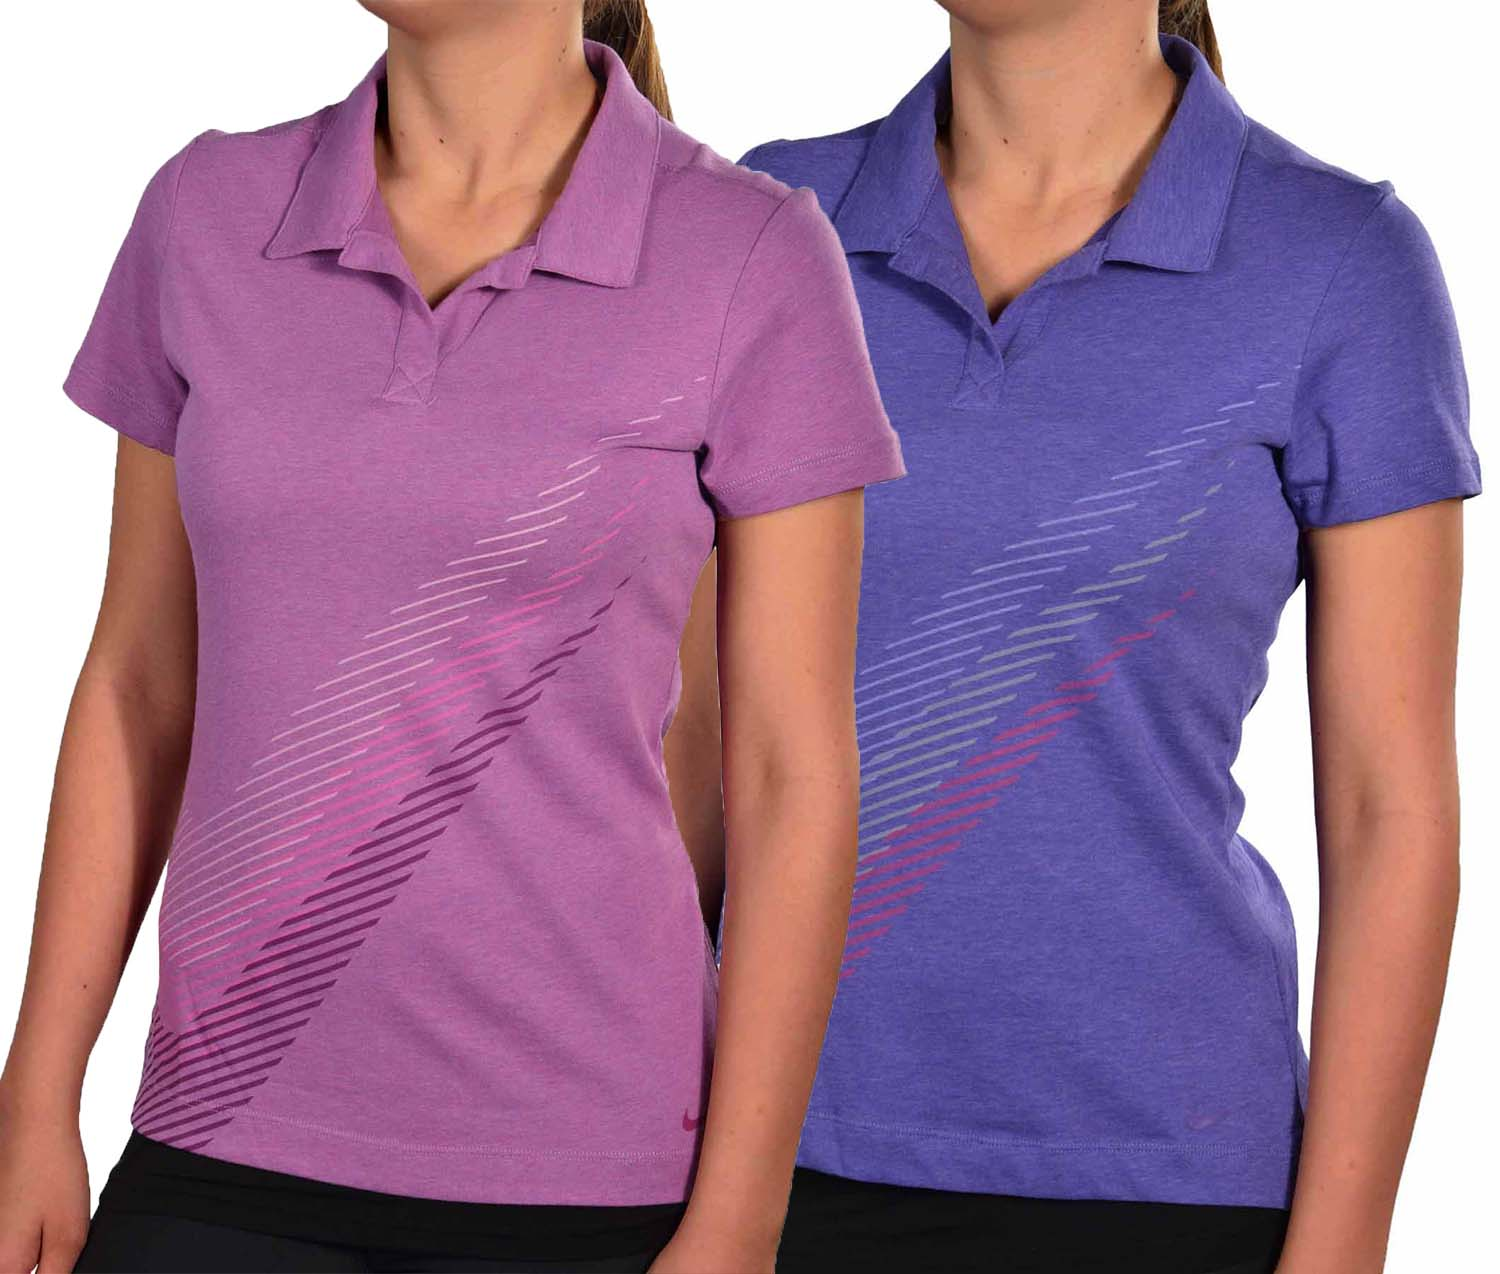 Nike women 39 s dri fit sports swoosh golf polo shirt ebay for Women s dri fit golf shirts